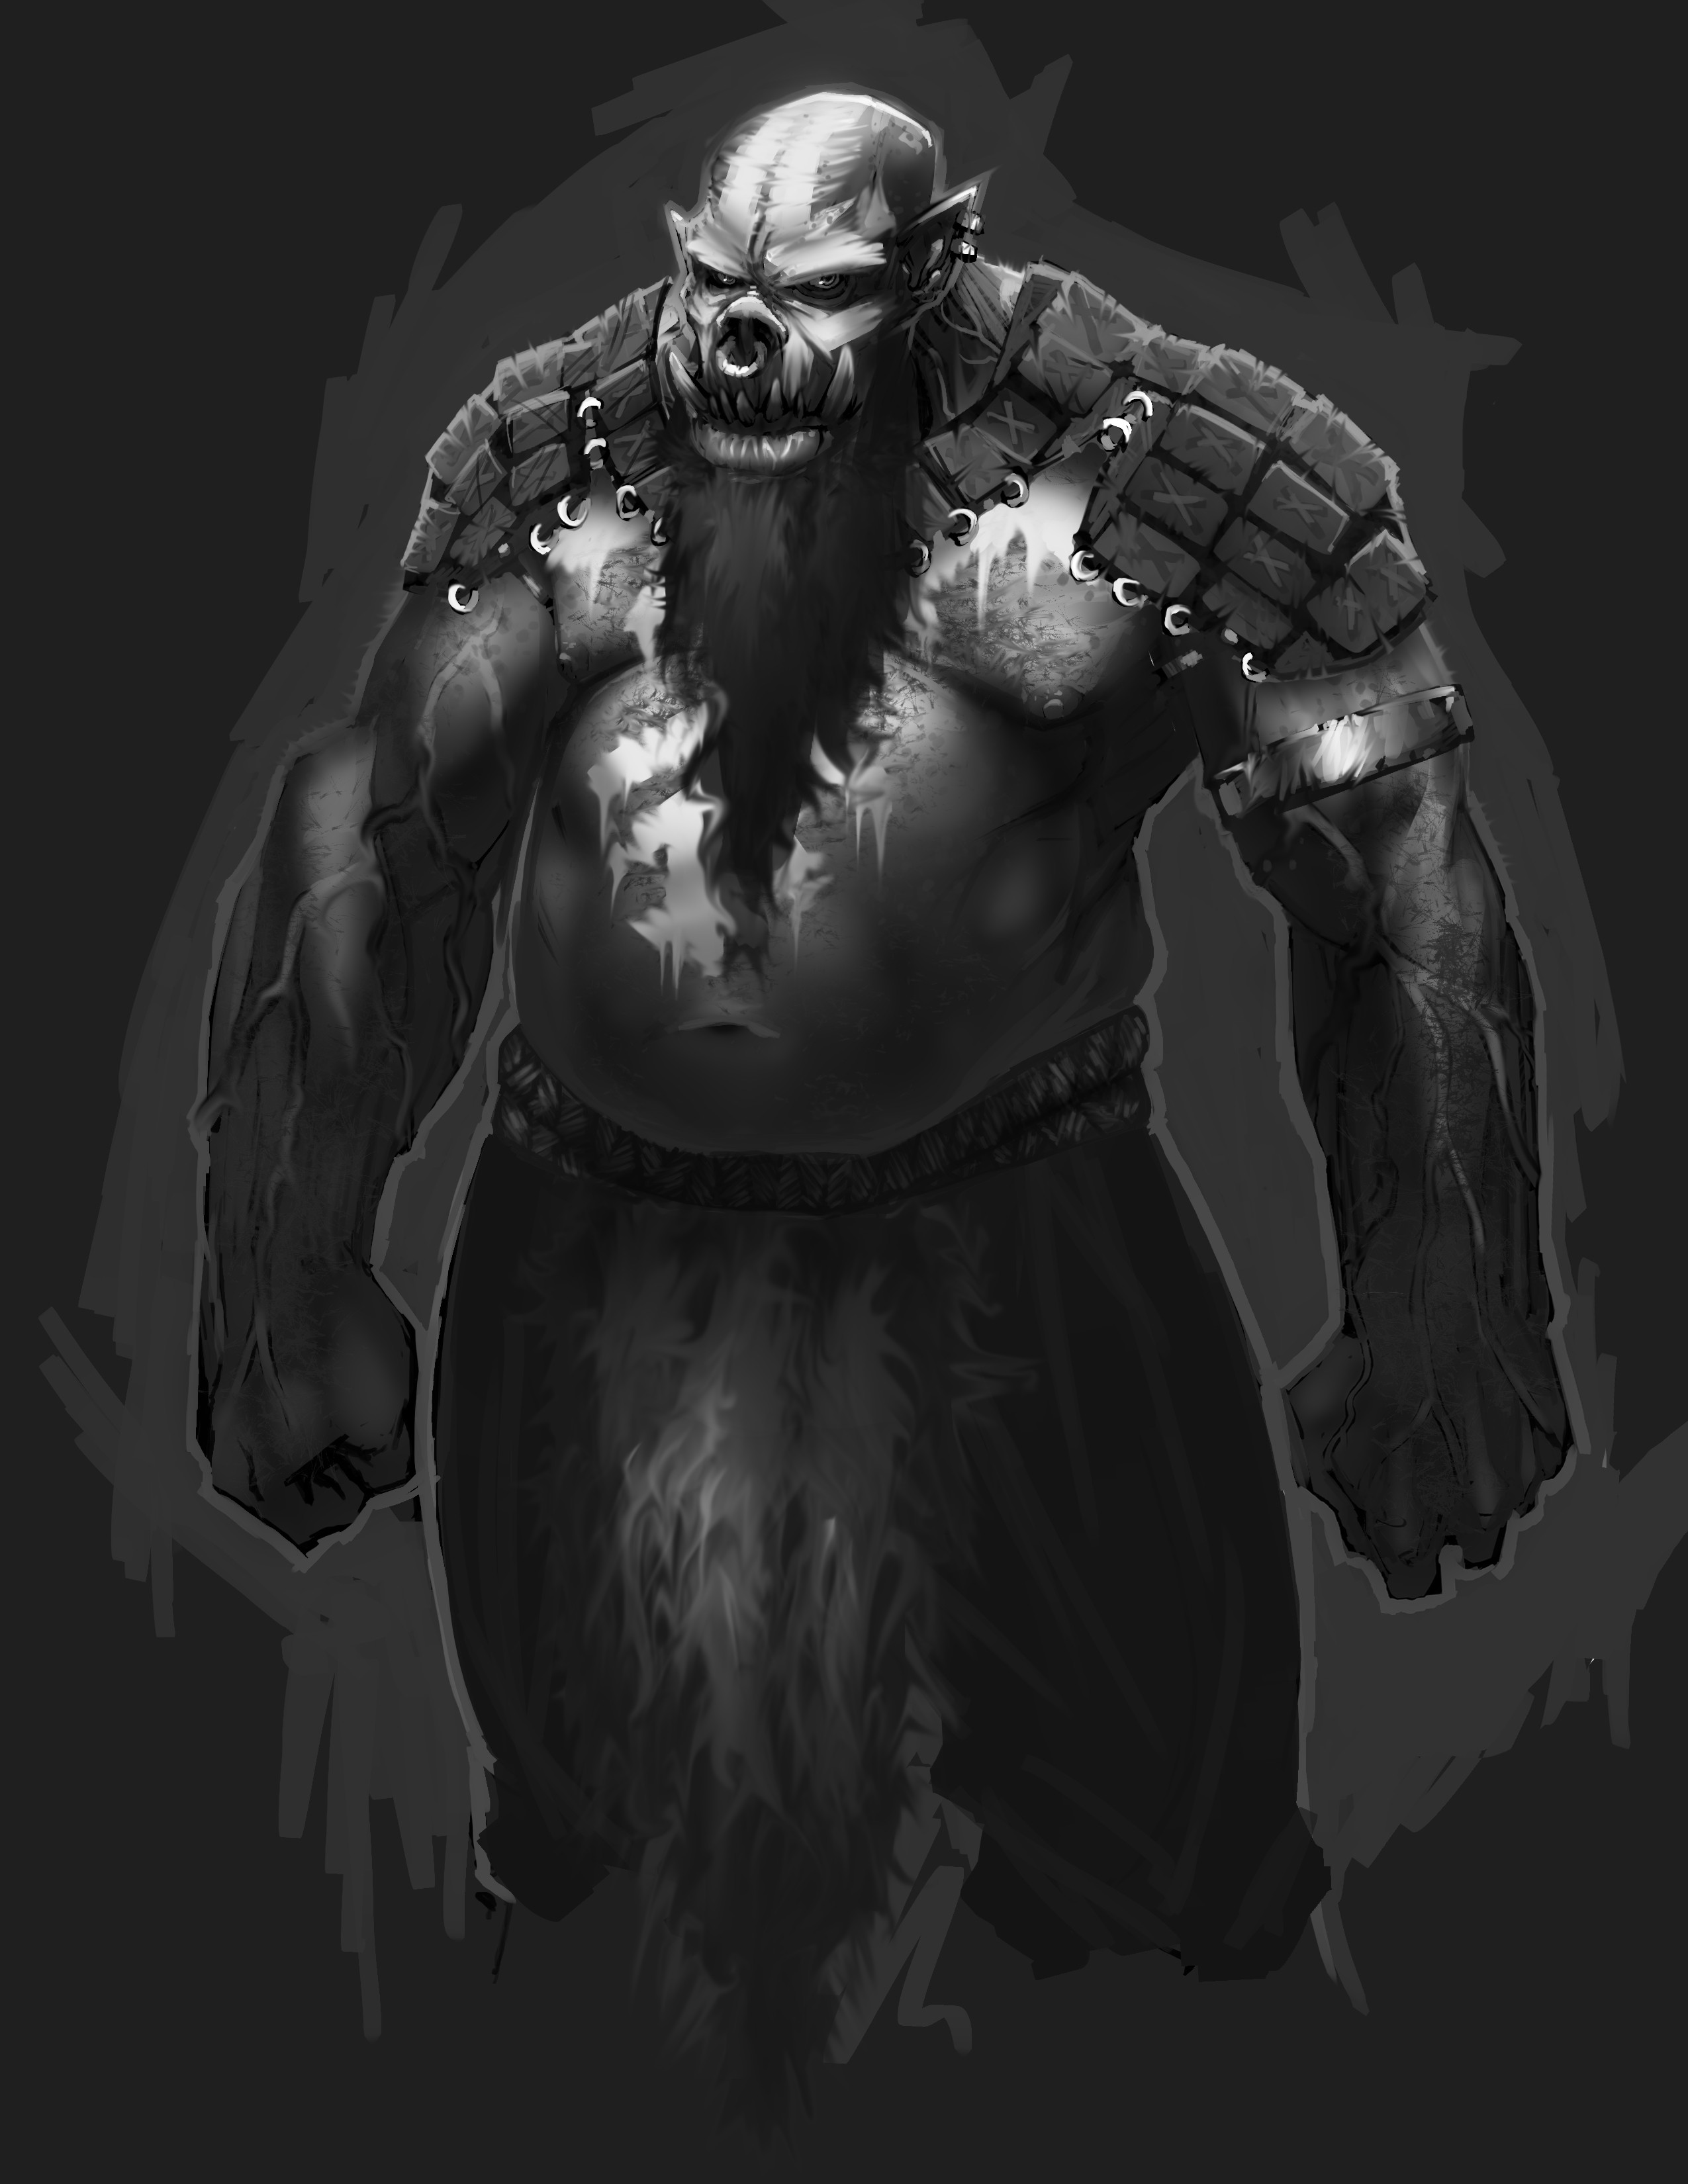 Armored base character with warpaint, dark beard and loincloth